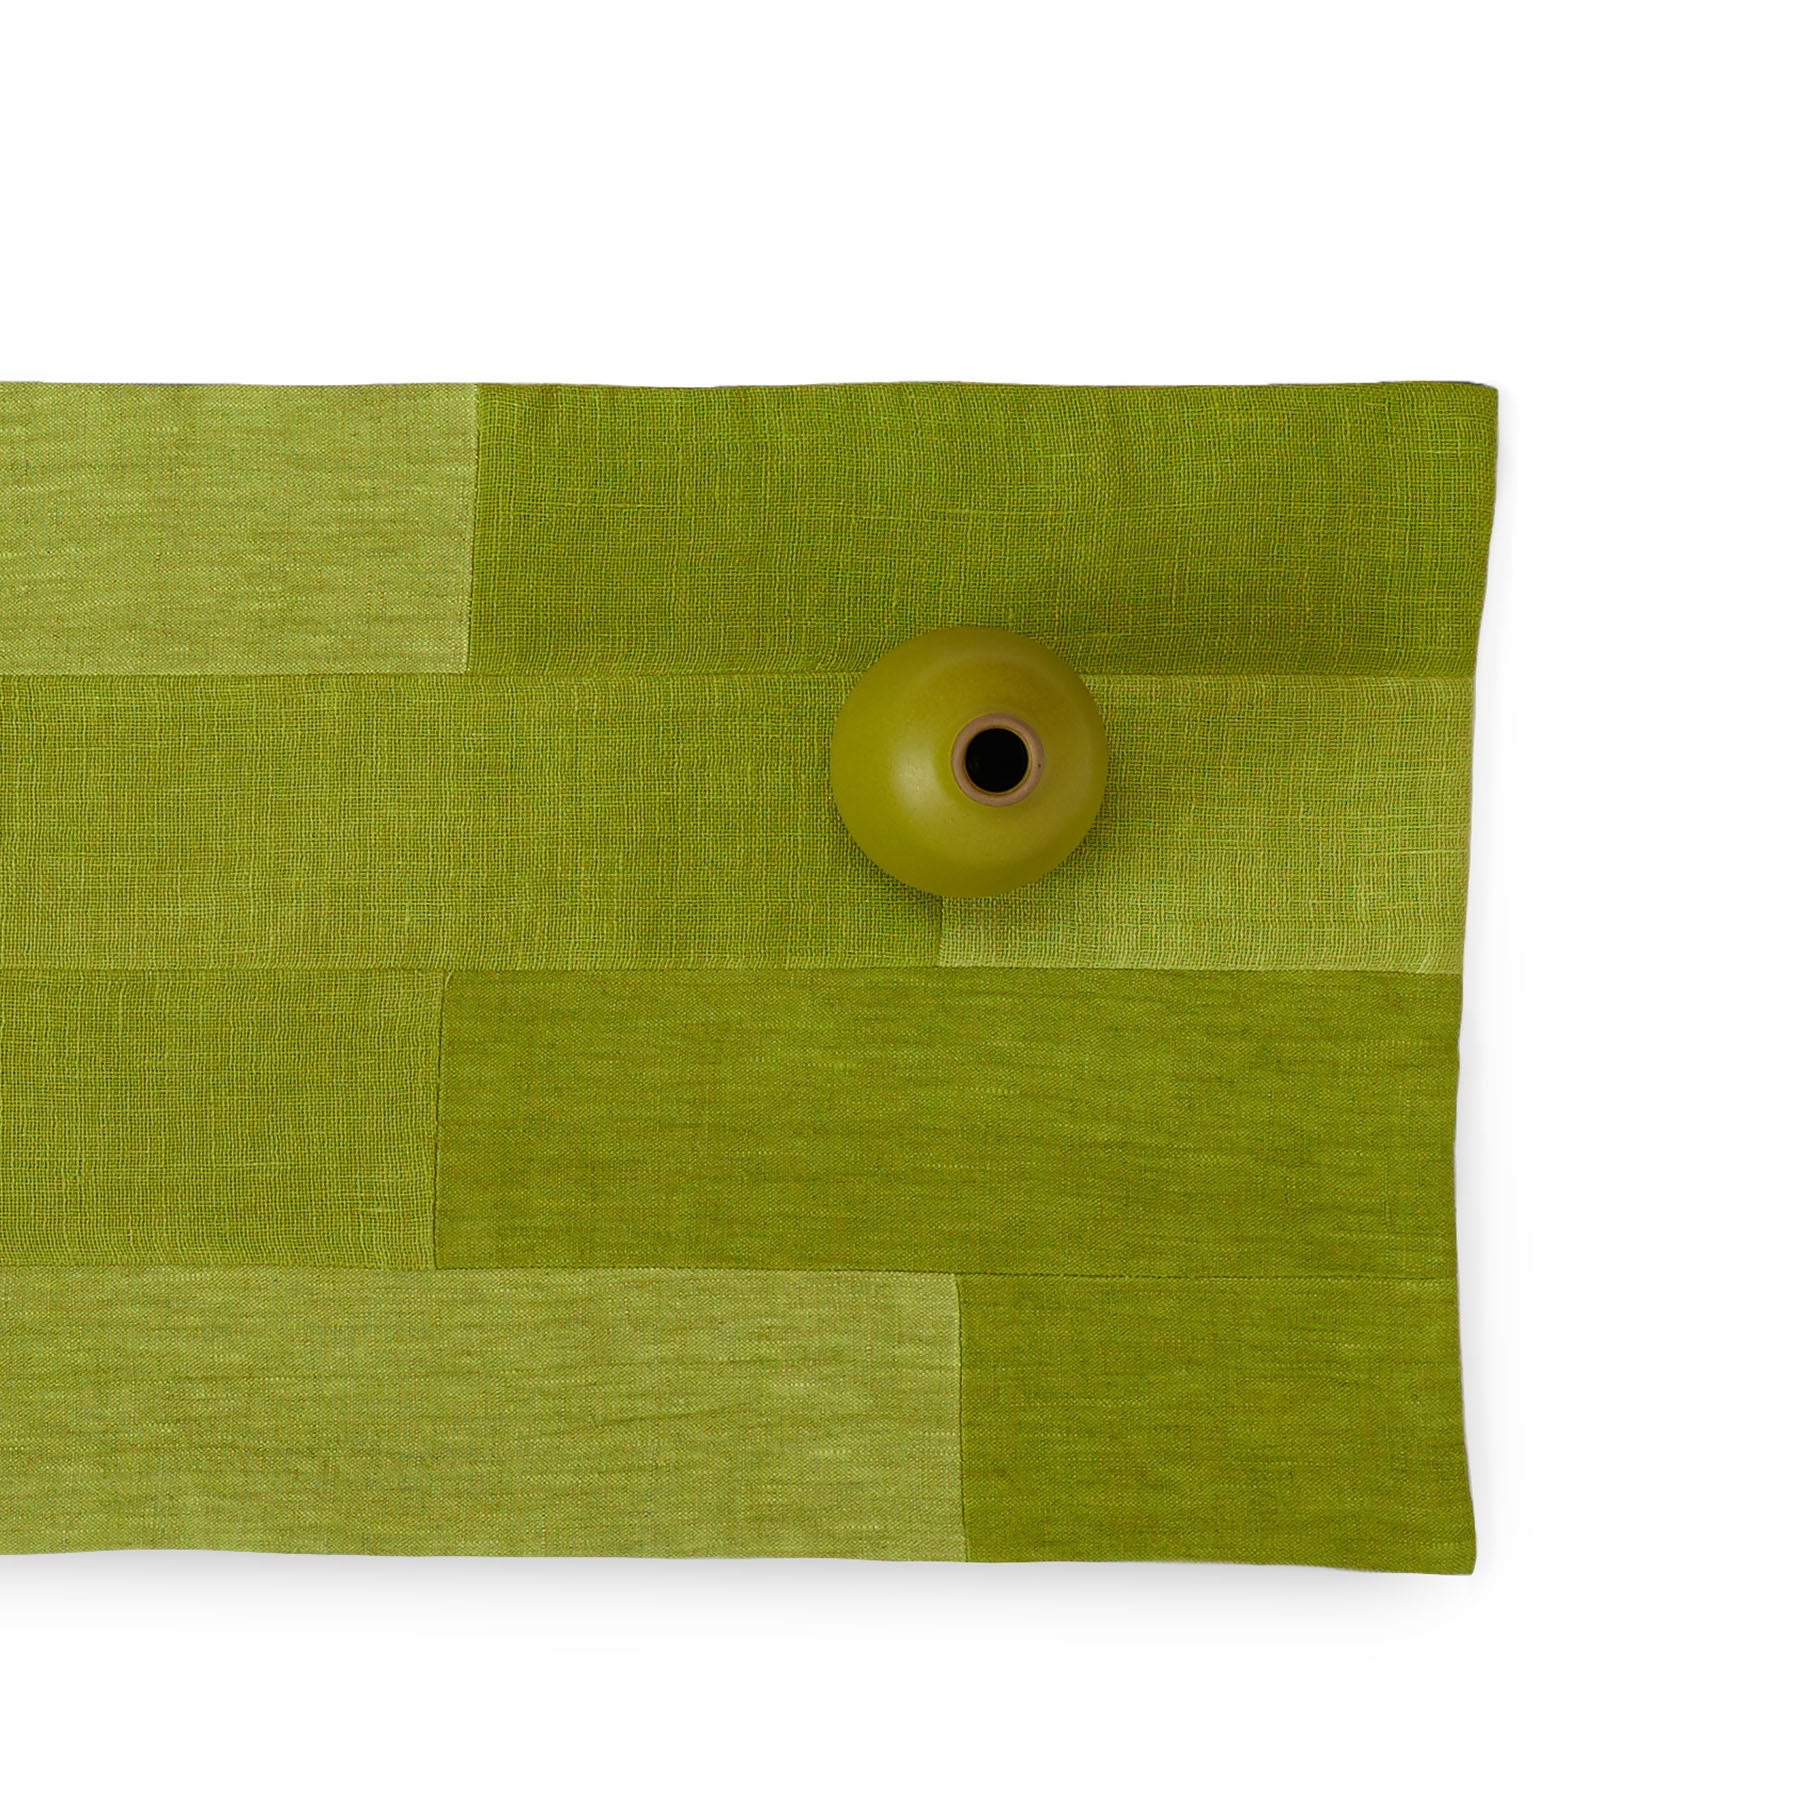 Linen Patchwork Runner in Avocado Zoom Image 1